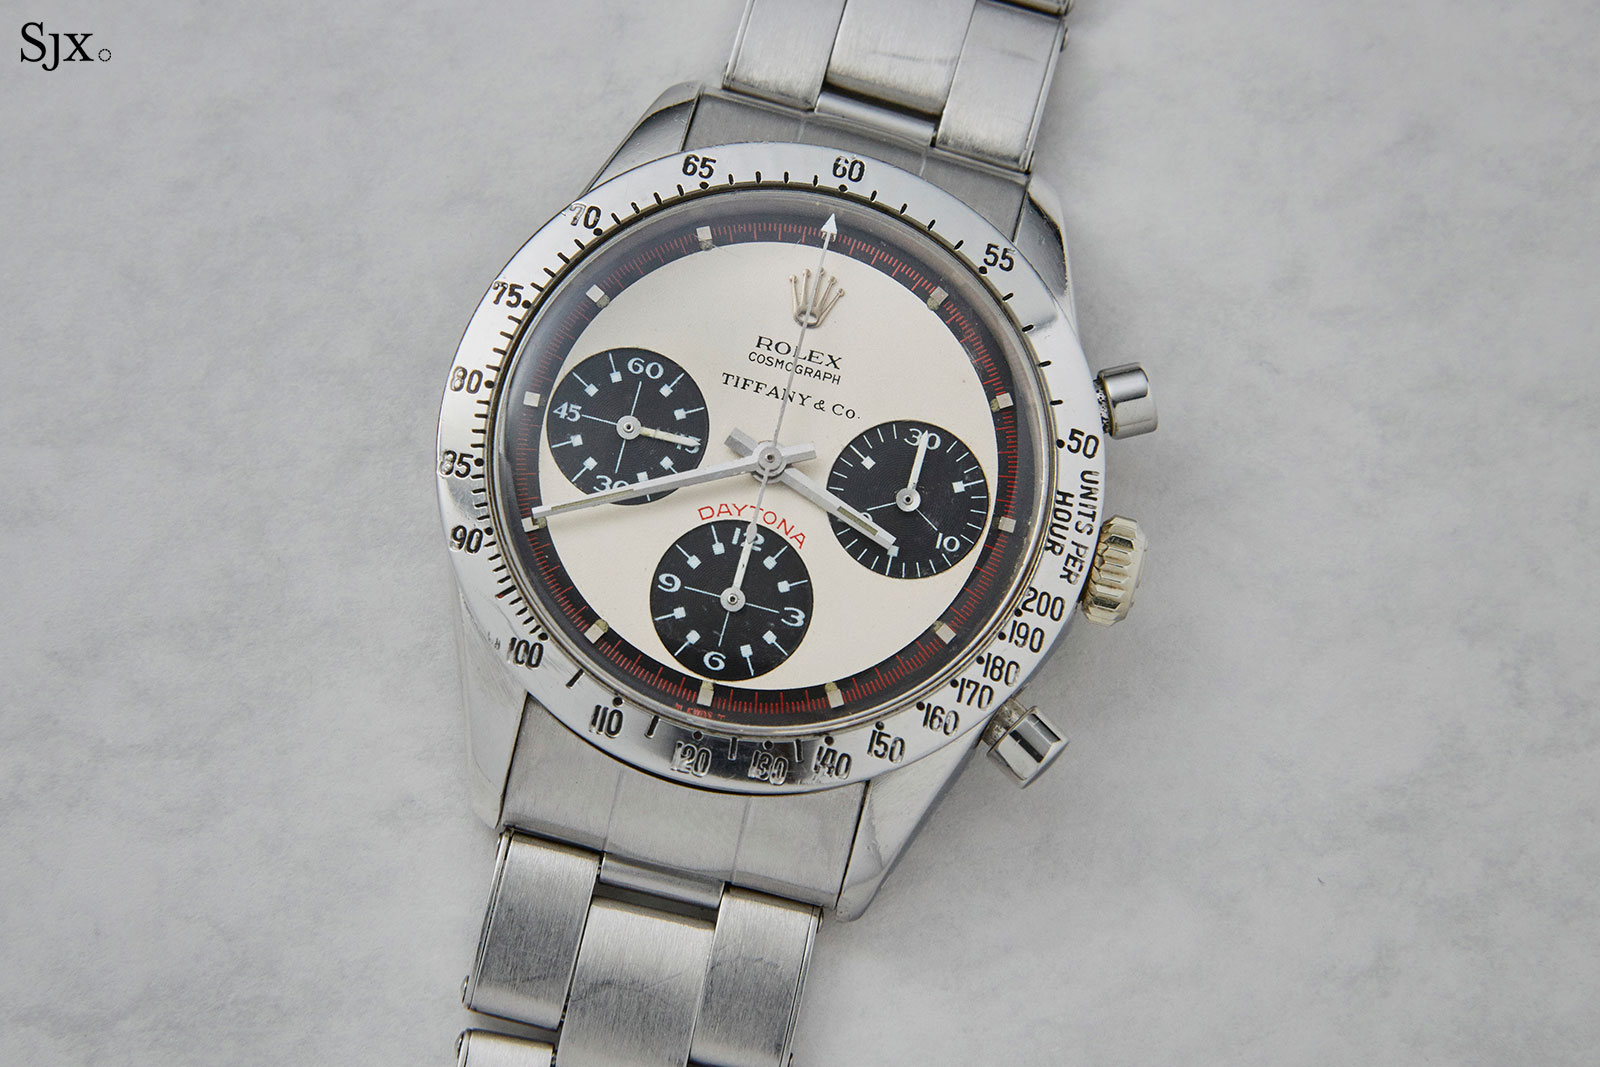 Rolex Daytona 6239 Paul Newman Tiffany dial 2